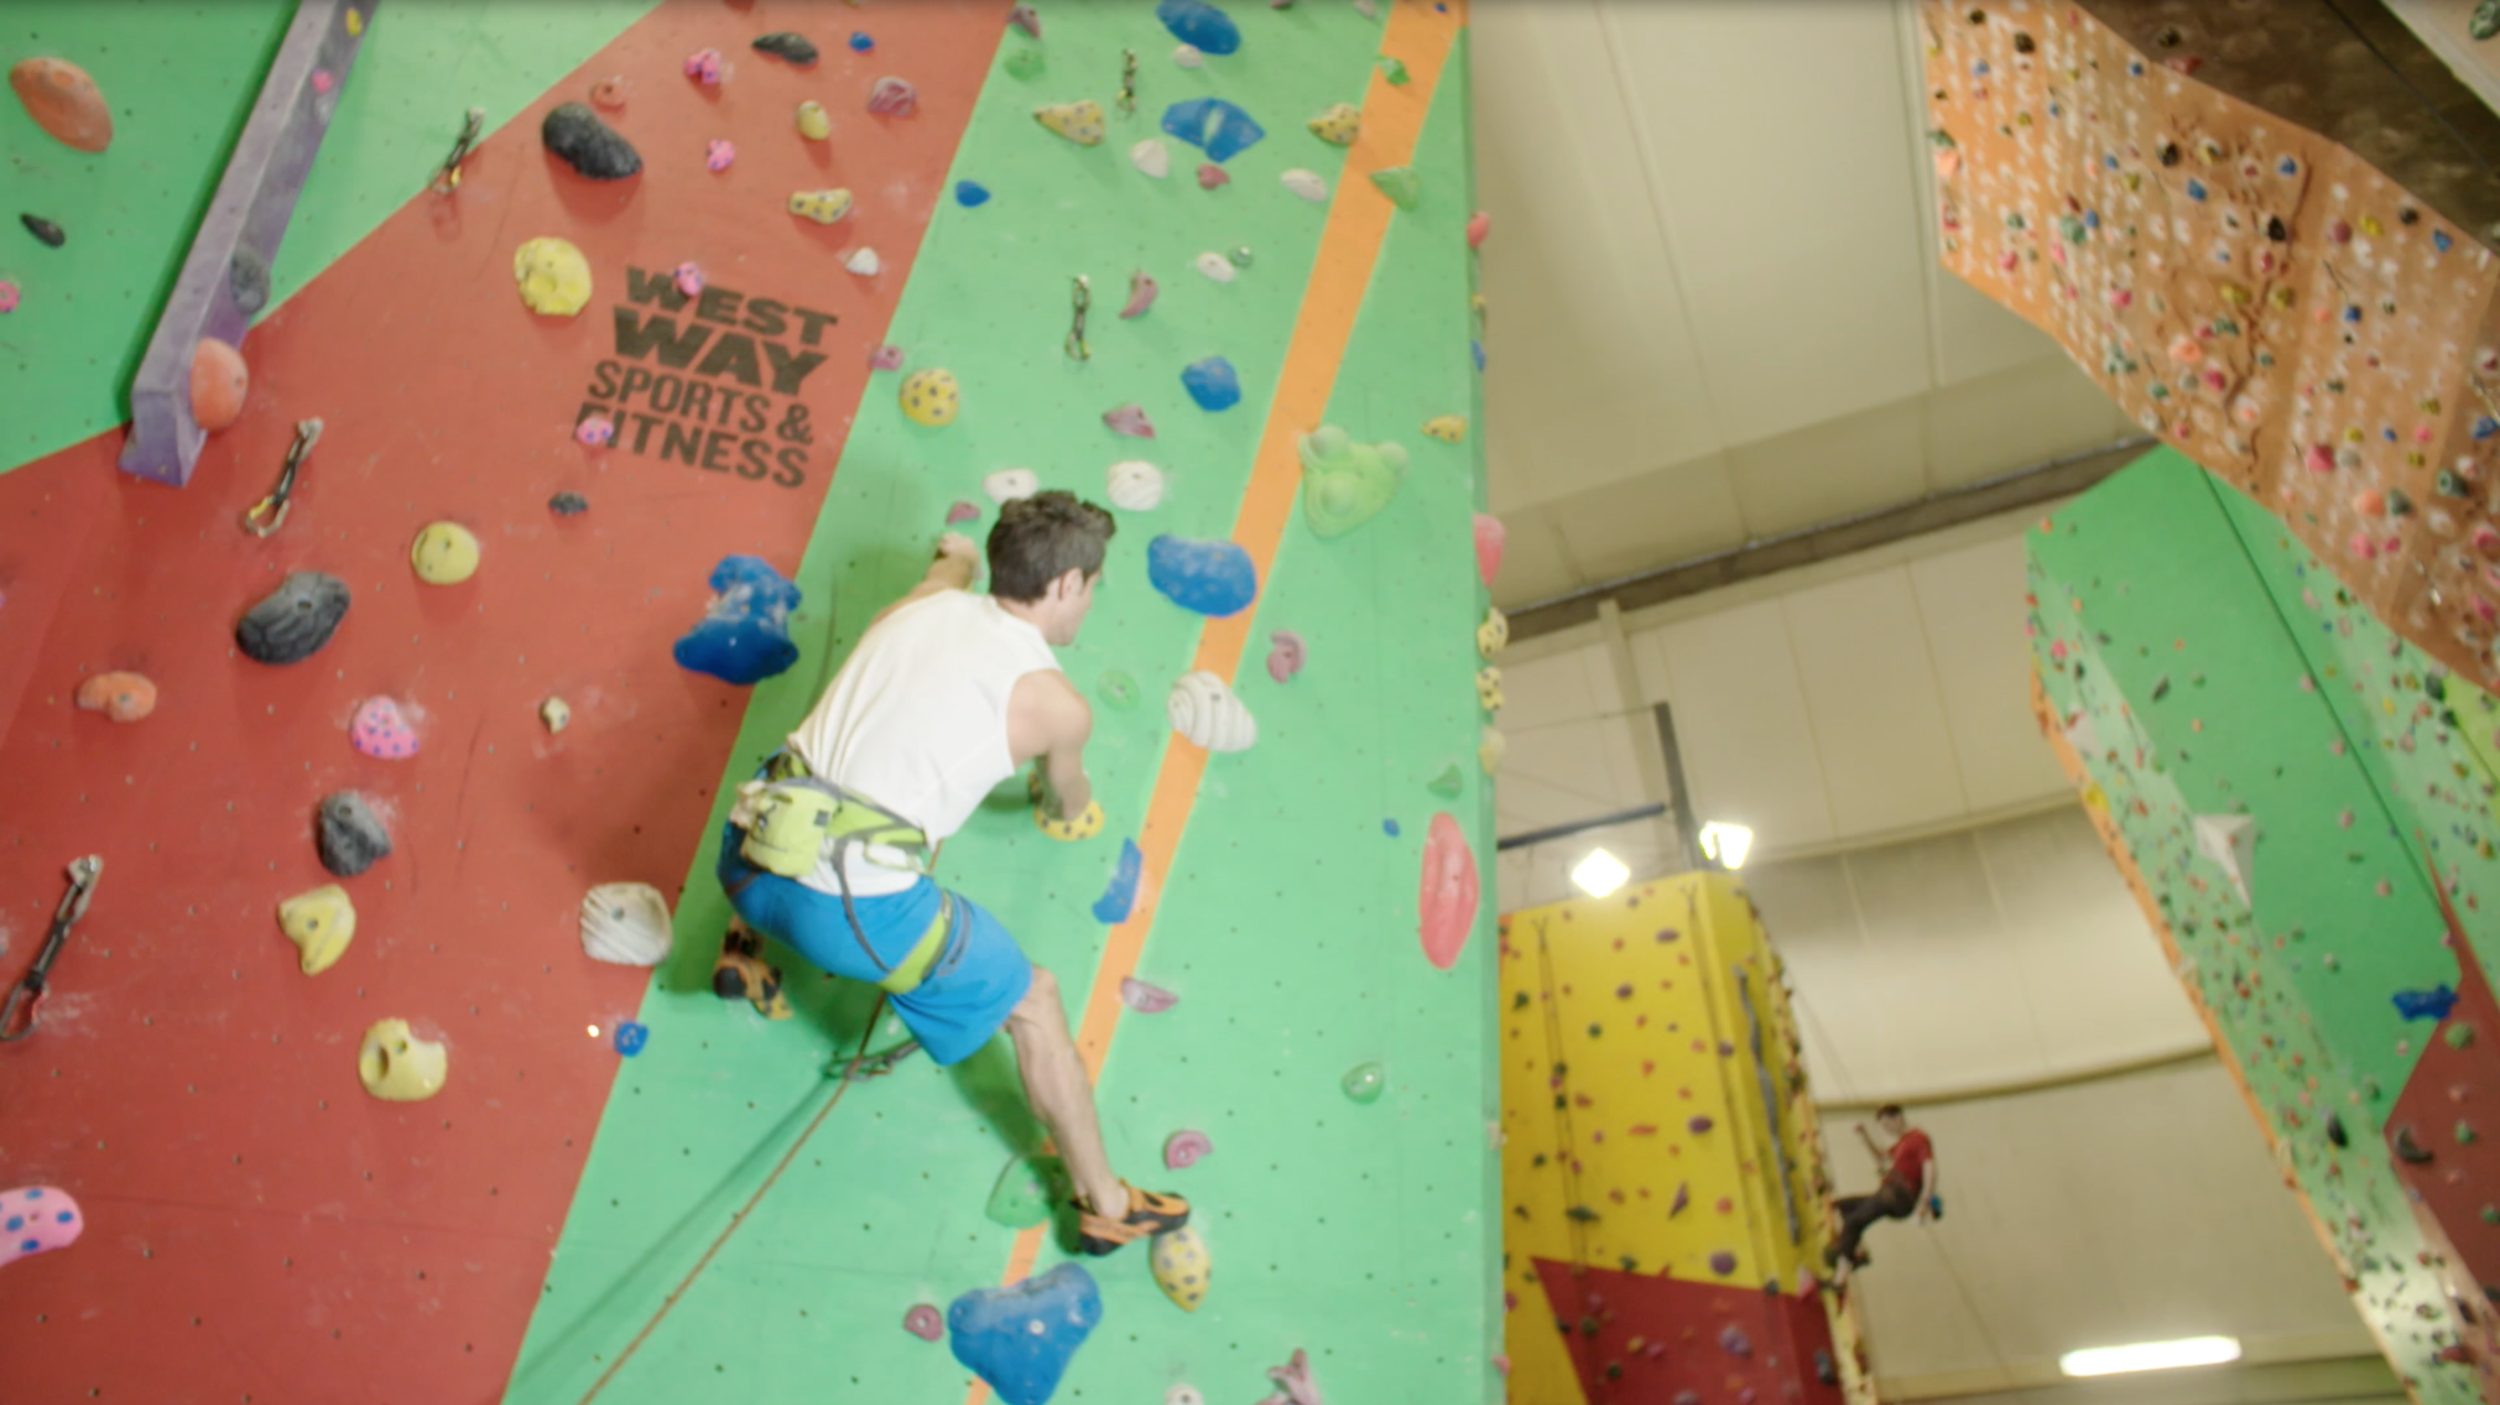 Westway Climbing Wall Promotional Video Client: Westway Sports Centre Directed by Palle Nodeland Music composed by Ben Smith  The music is composed with sounds gathered from within the wall.